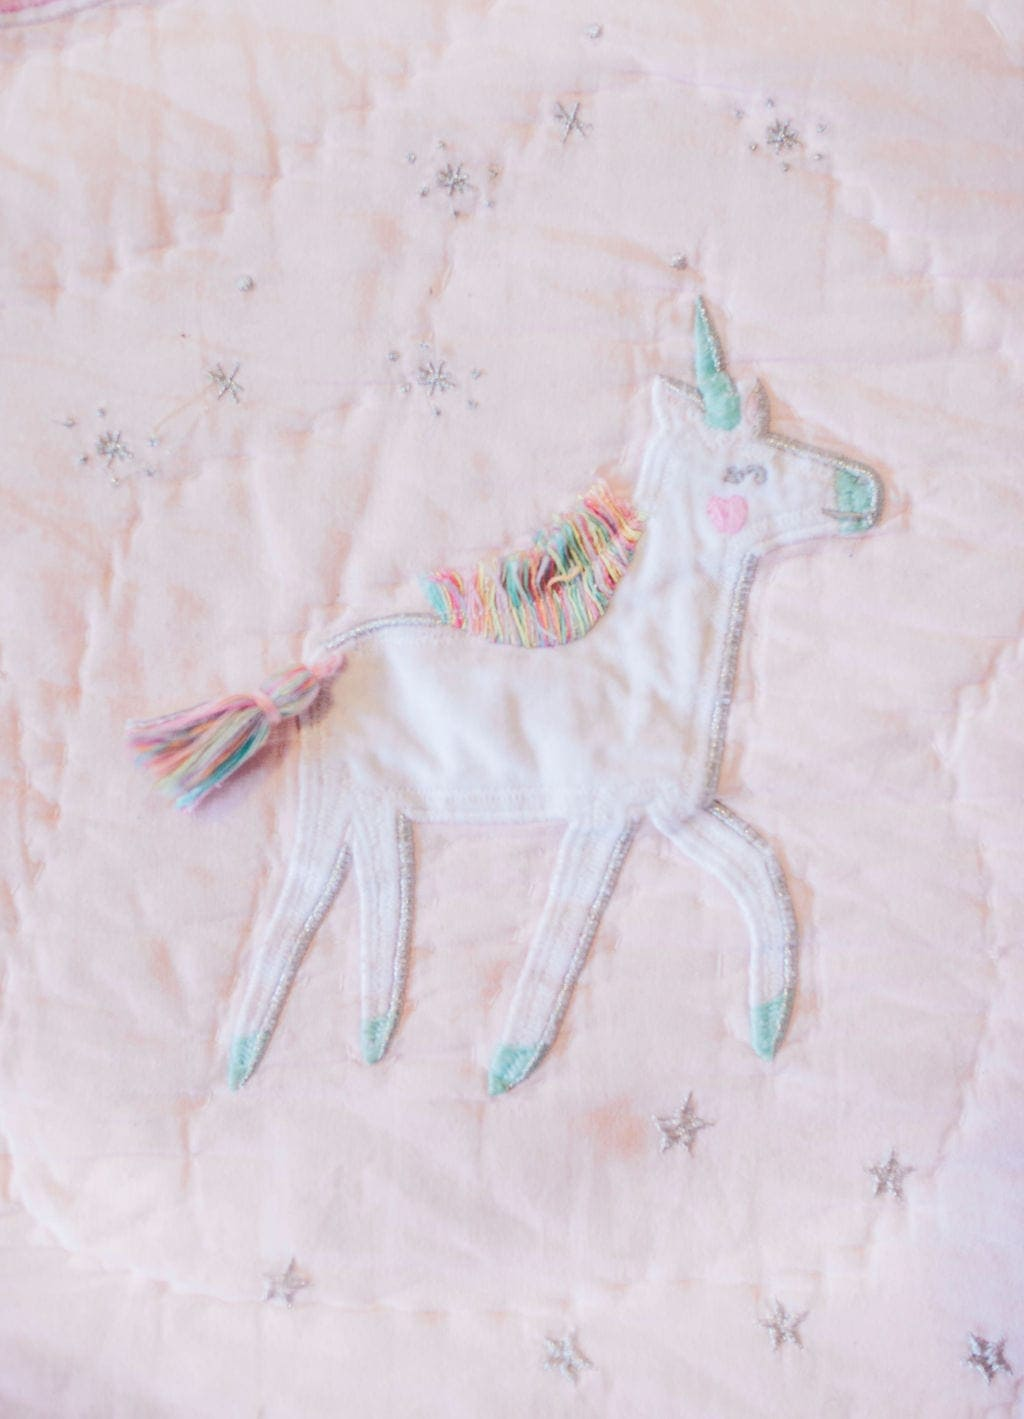 unicorn on blanket